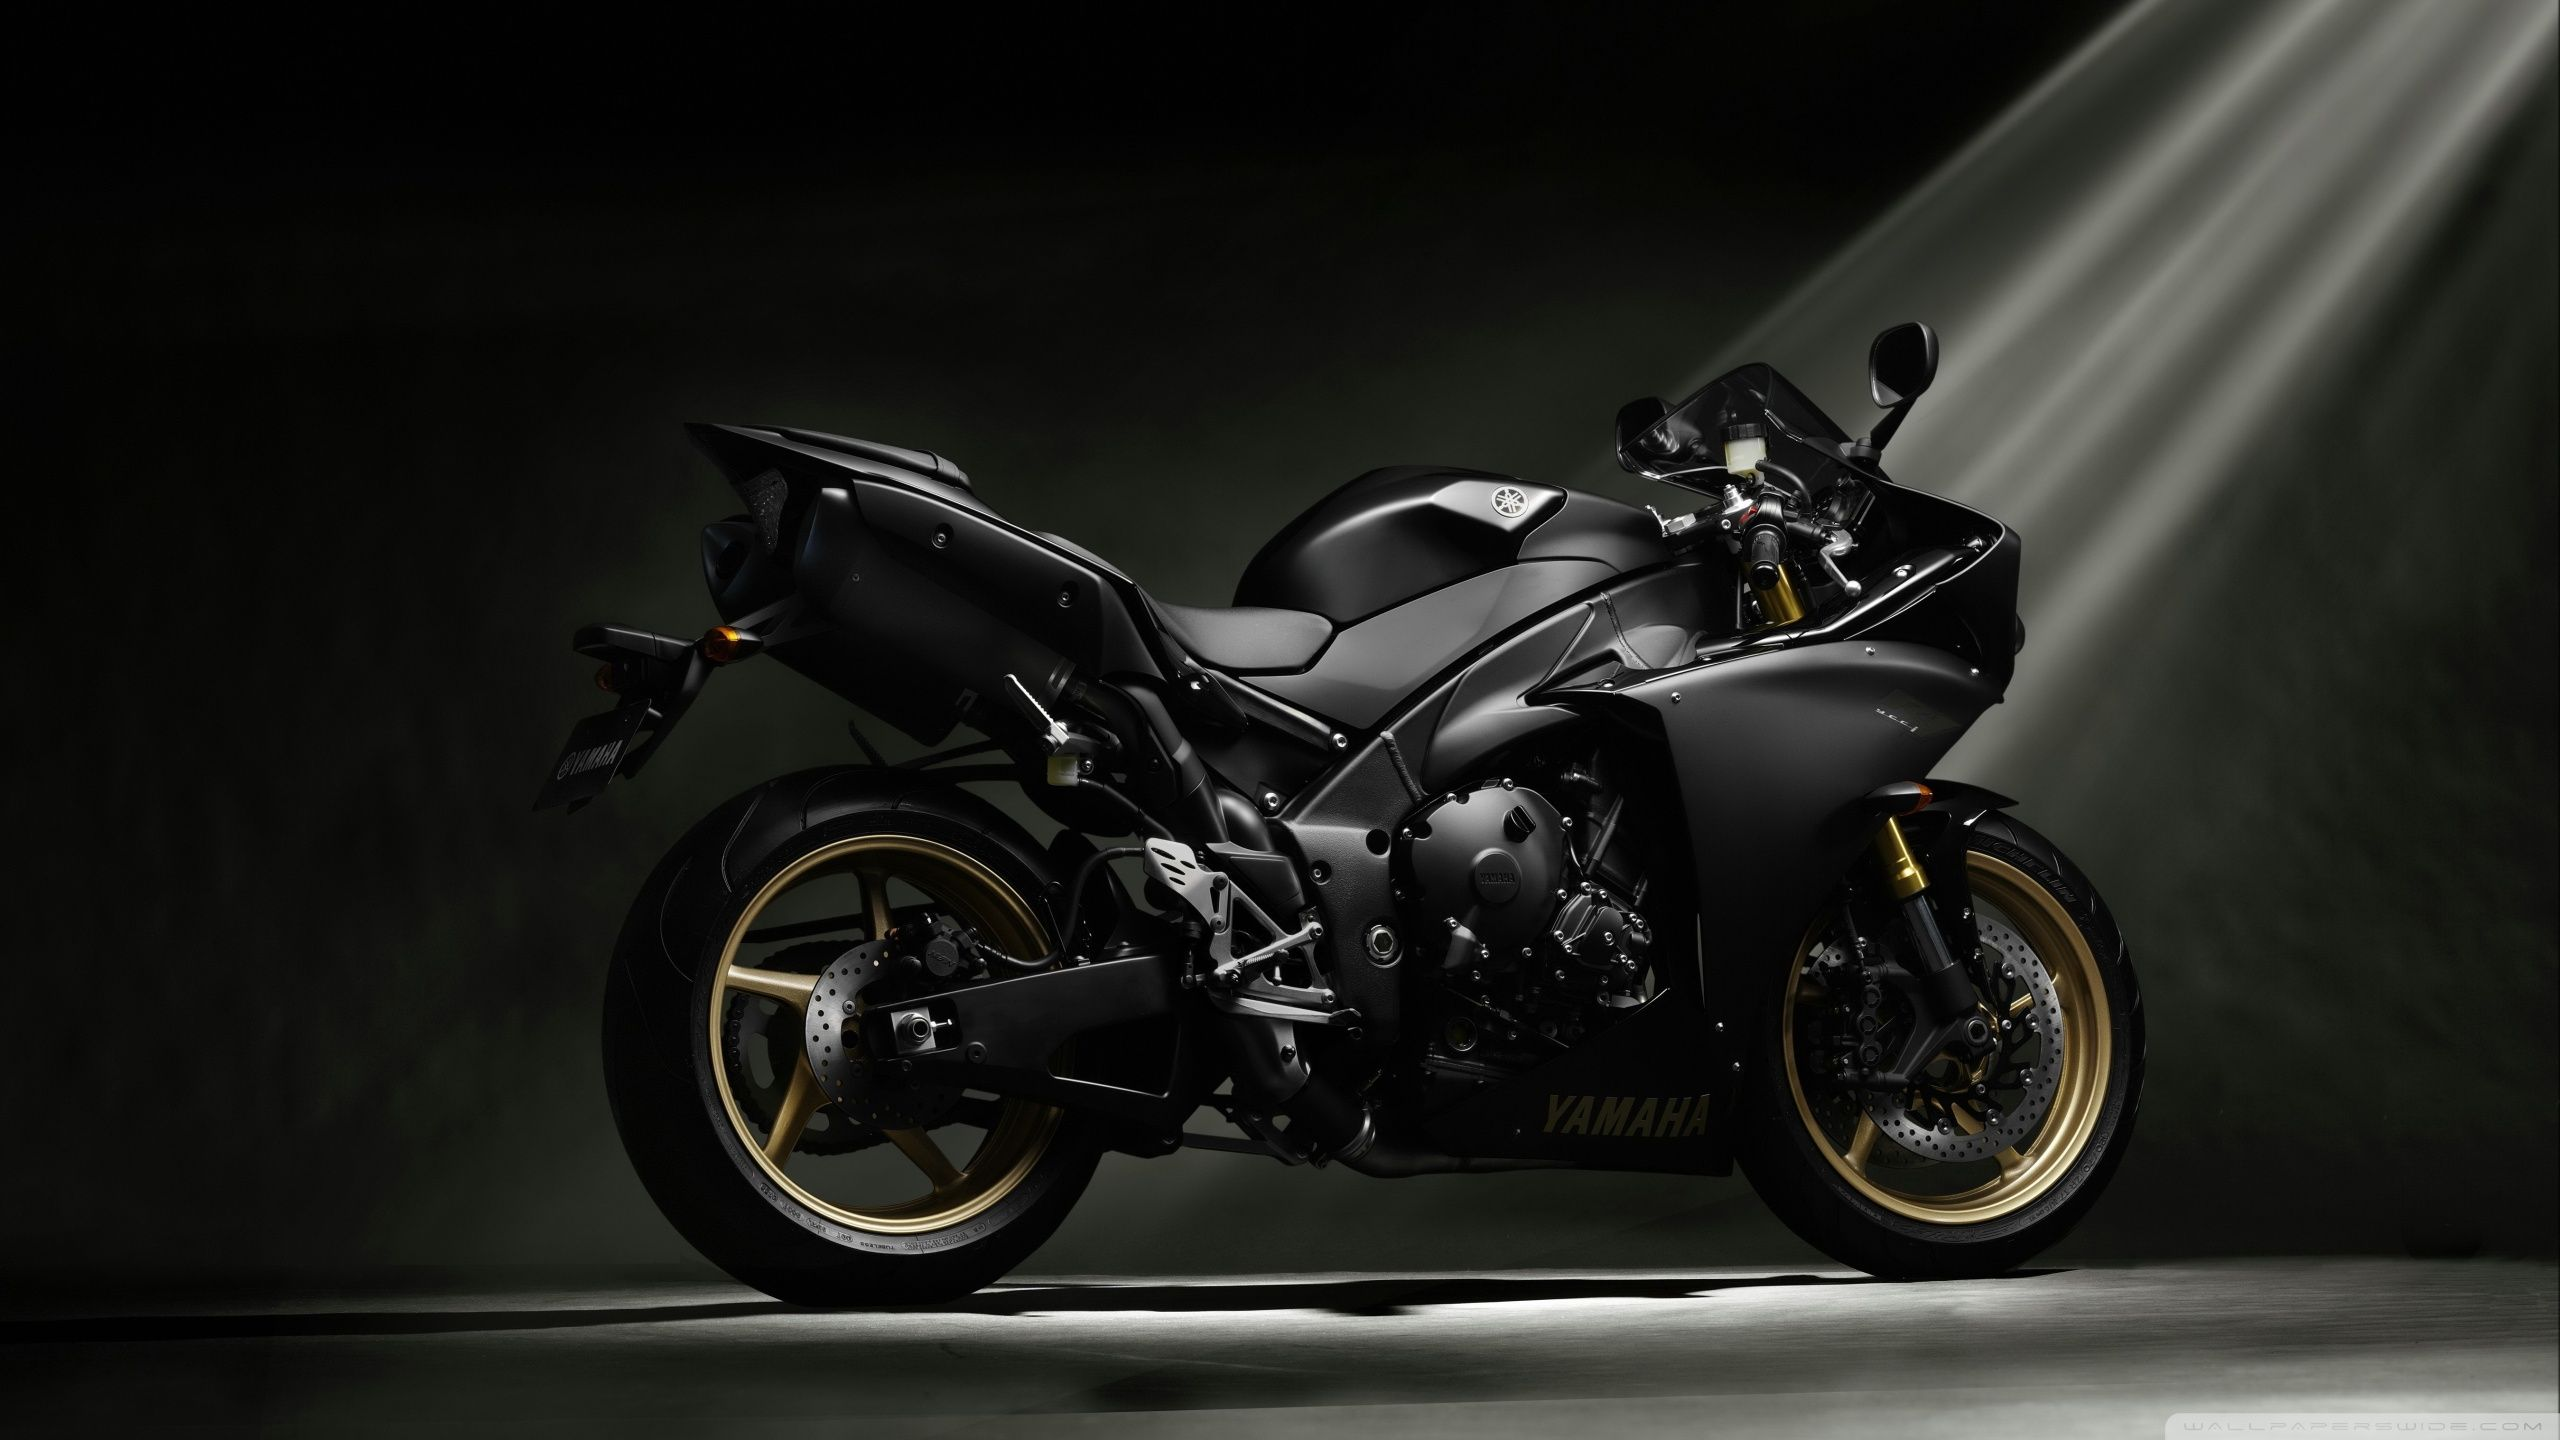 Yamaha Yzf R1 Wallpapers Top Free Yamaha Yzf R1 Backgrounds Wallpaperaccess